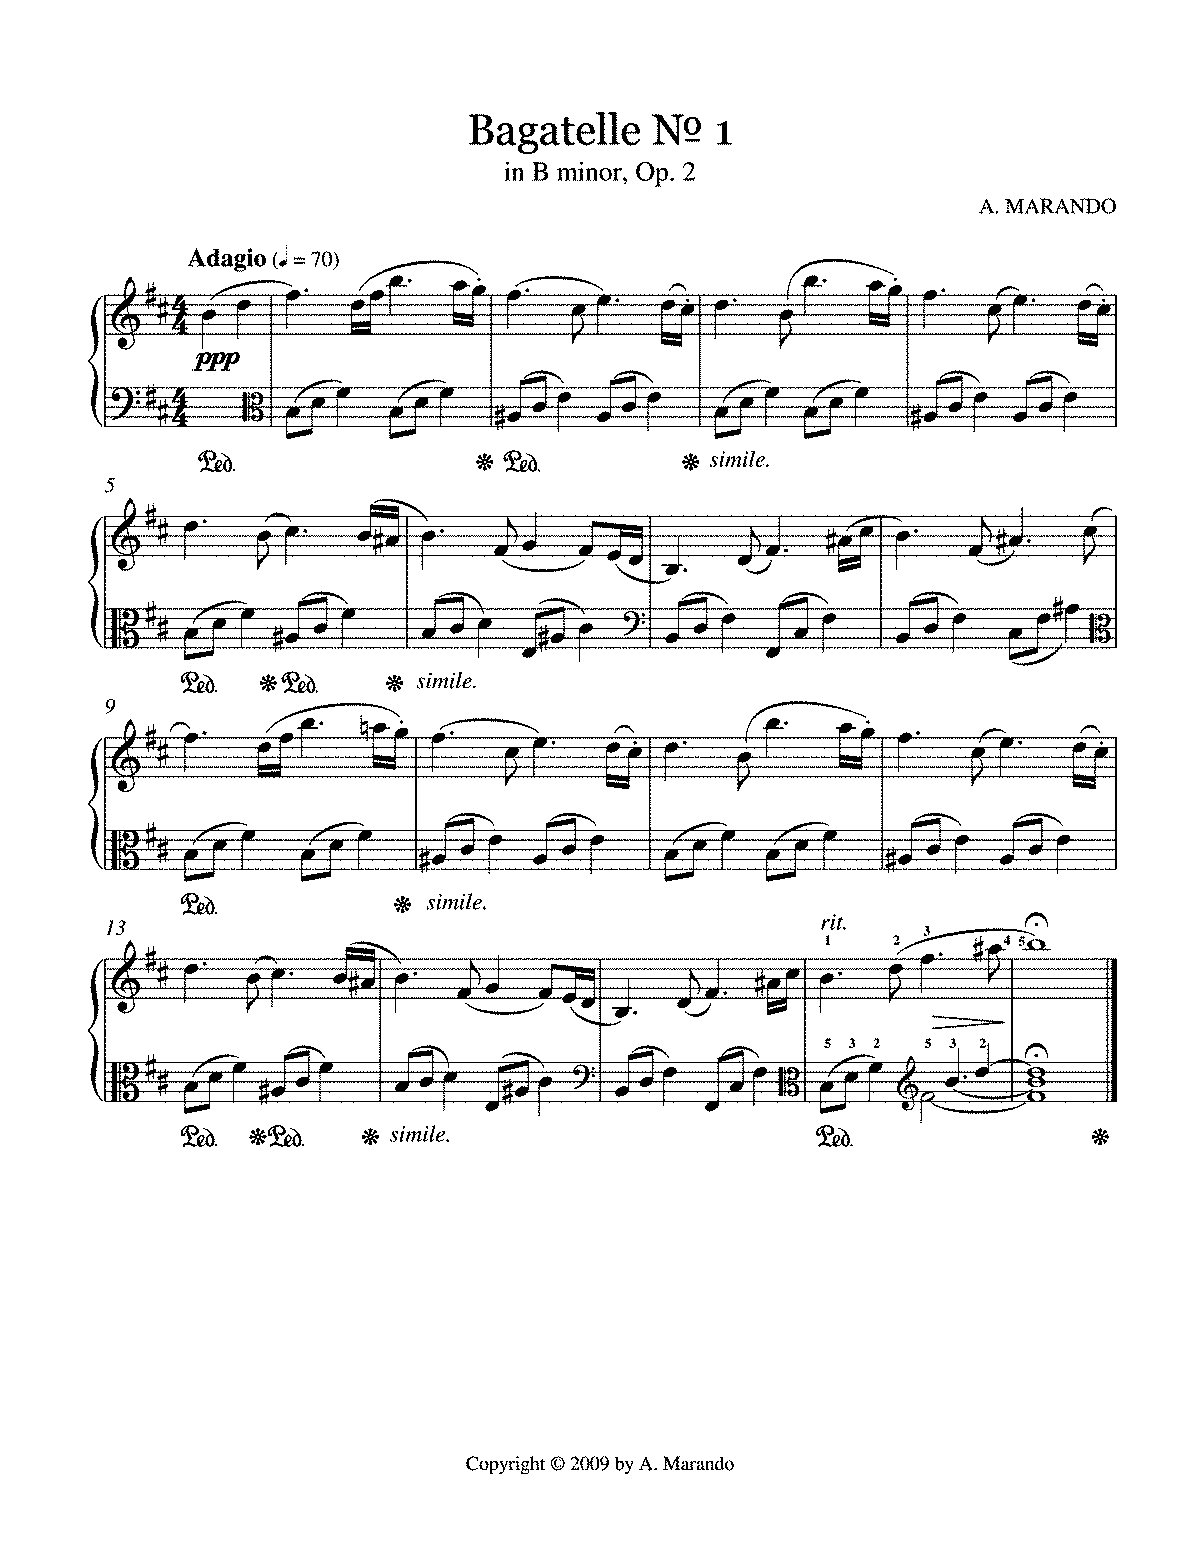 PMLP132791-A. Marando - Op. 2, Bagatelle No. 1 in B minor.pdf